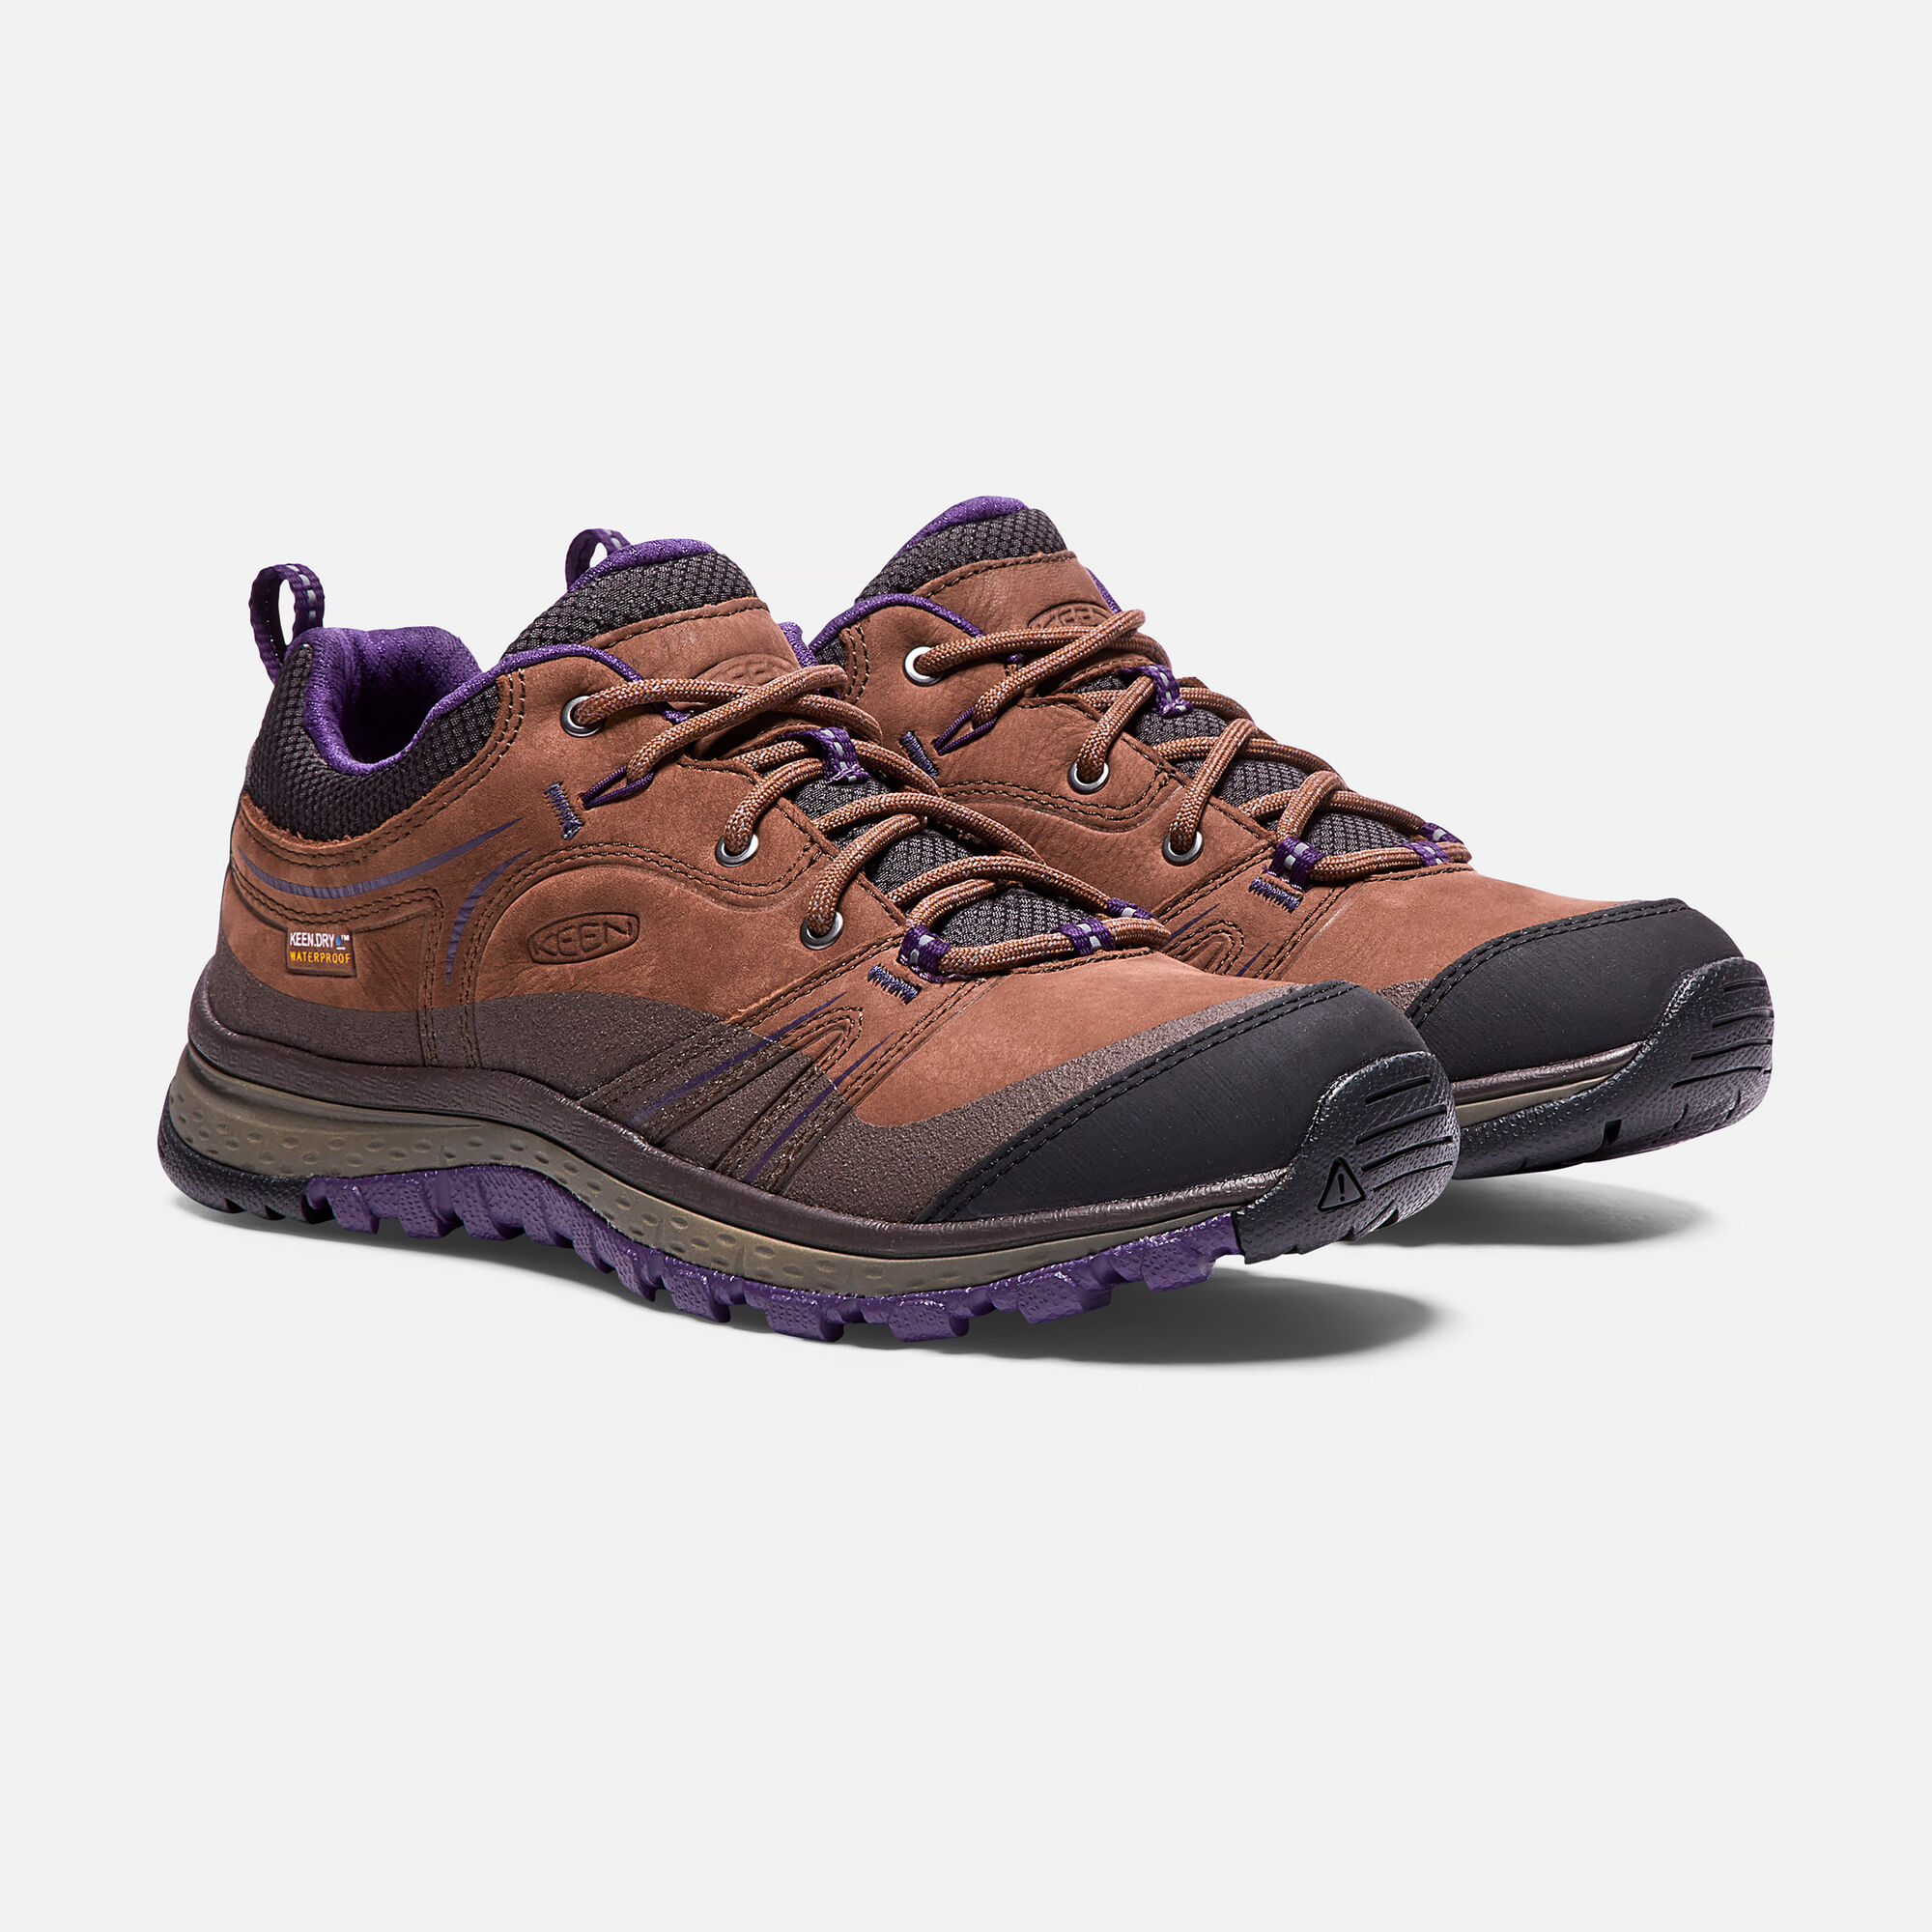 2d5ffa5fc WOMEN S TERRADORA LEATHER WATERPROOF HIKING SHOES in Scotch Mulch - small  view.